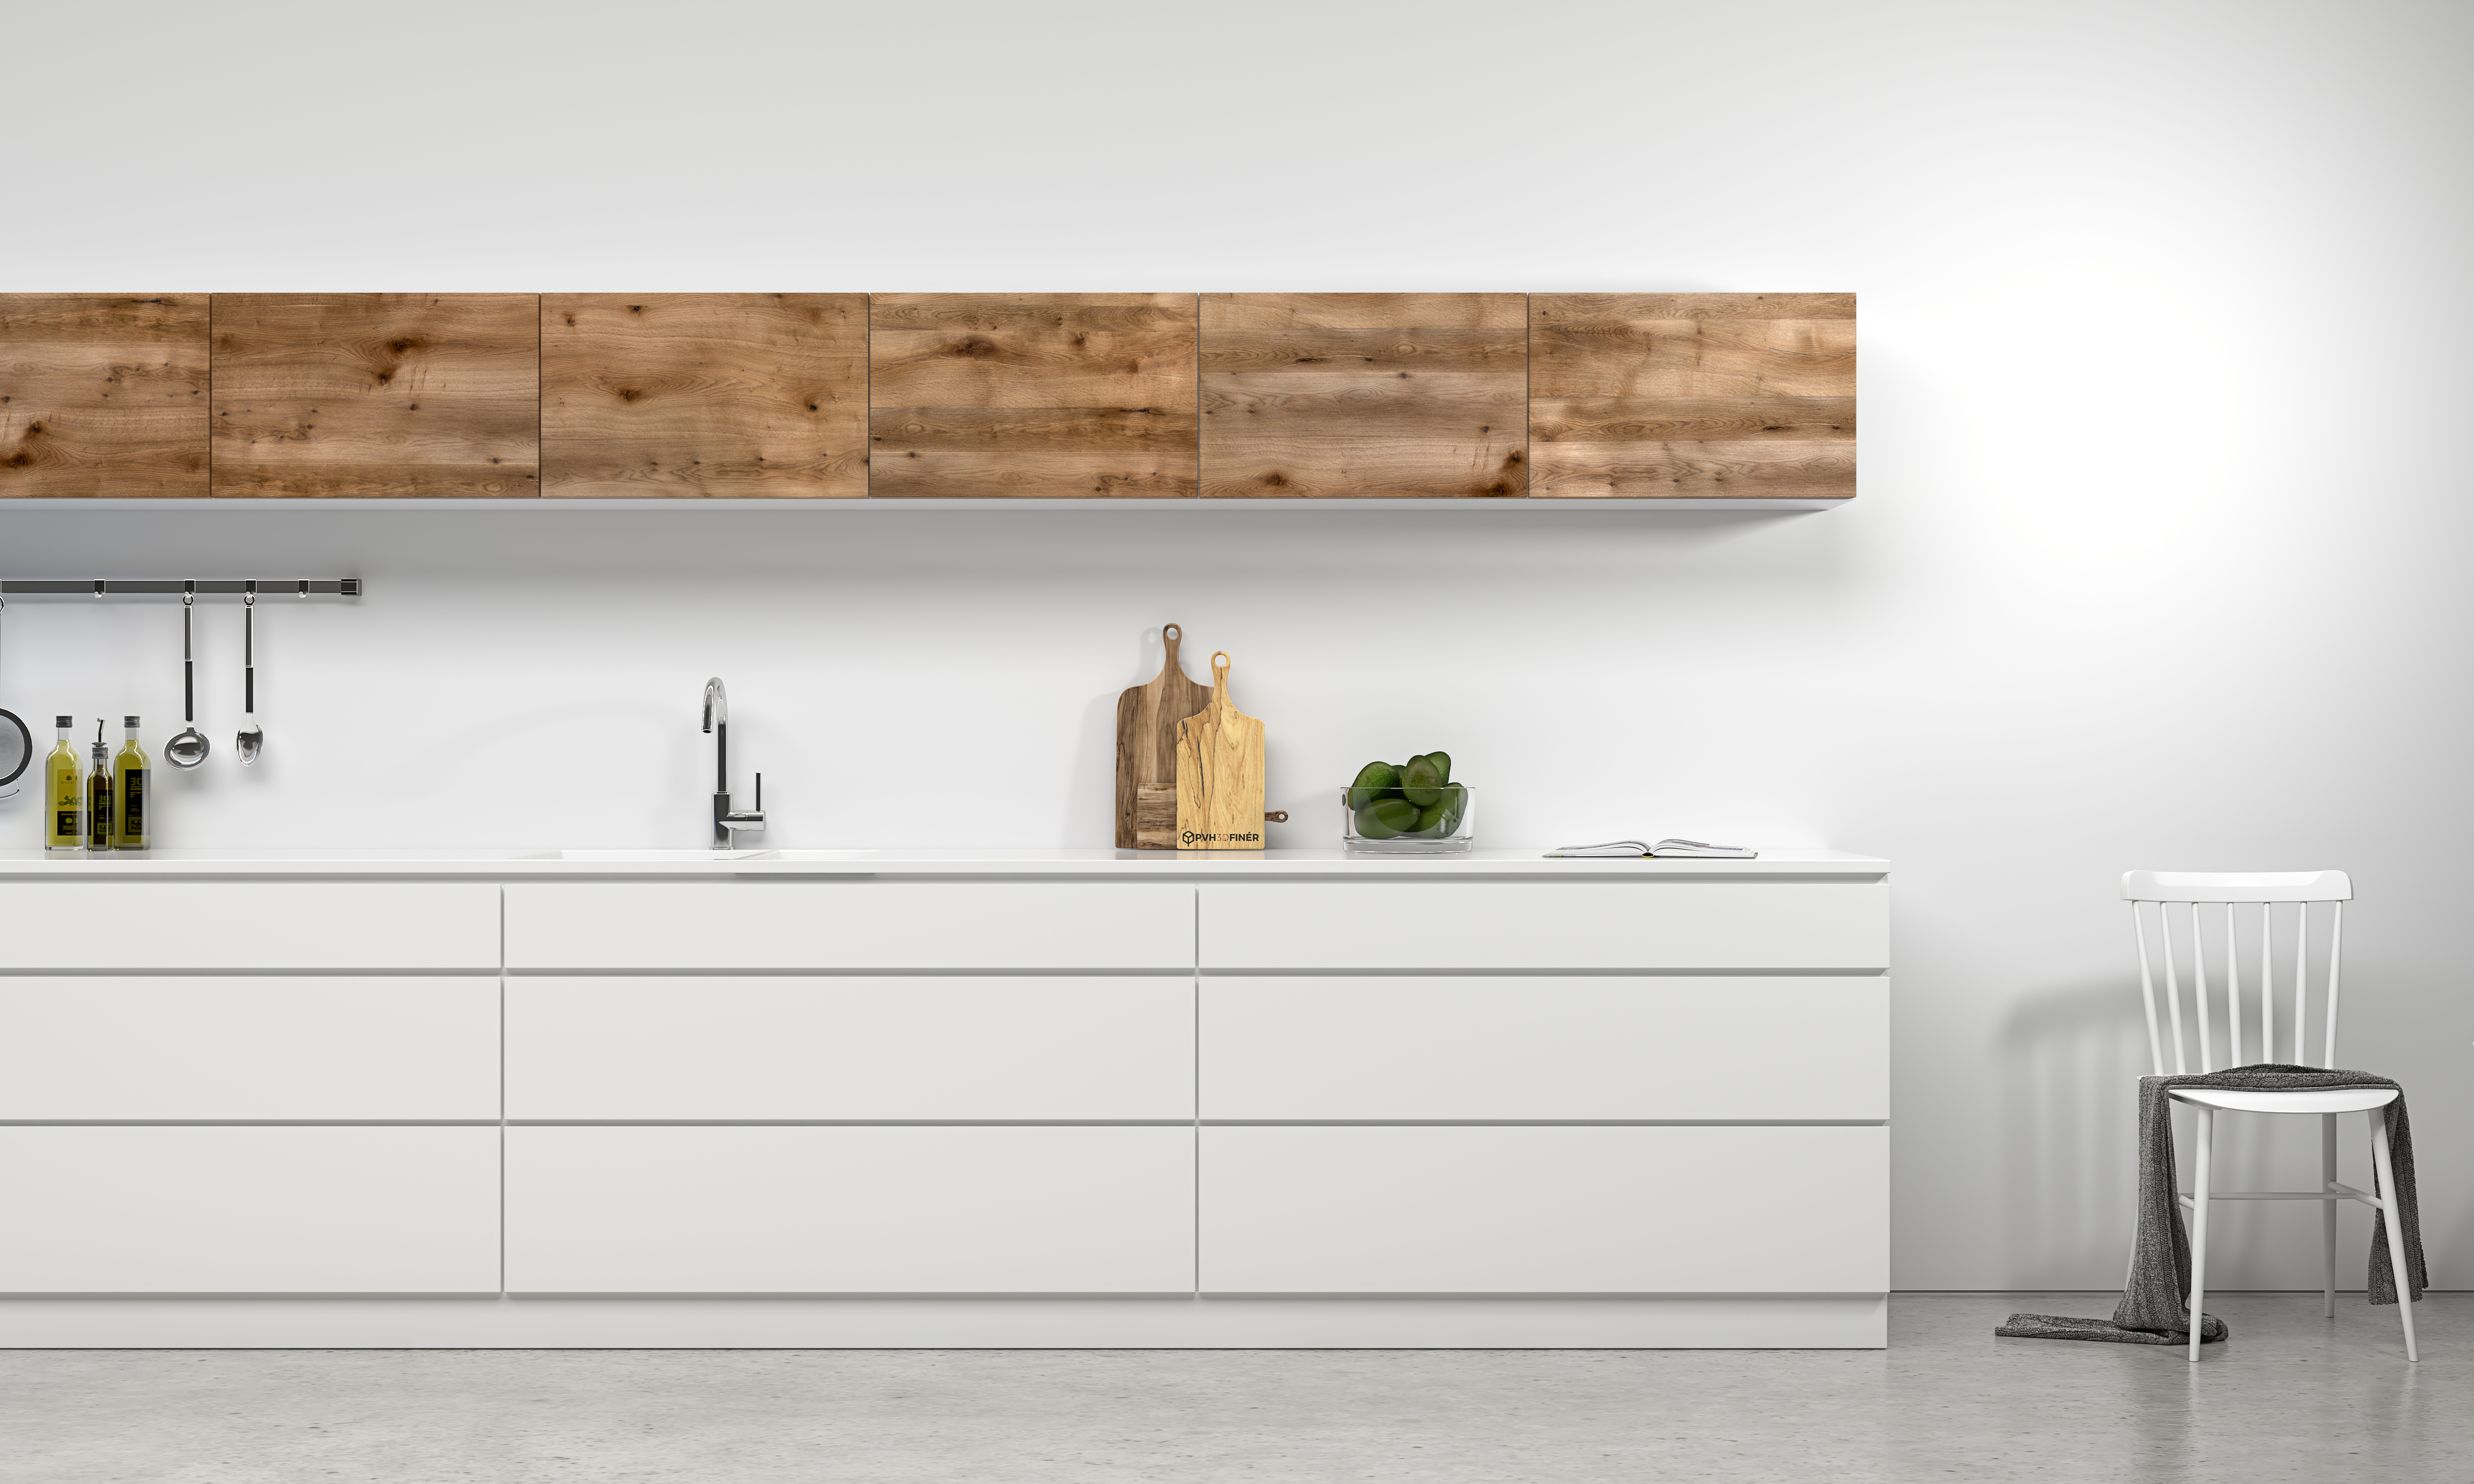 Barnwood - Brown Oak used for kitchen fronts which creates a beautiful contrast to the modern white